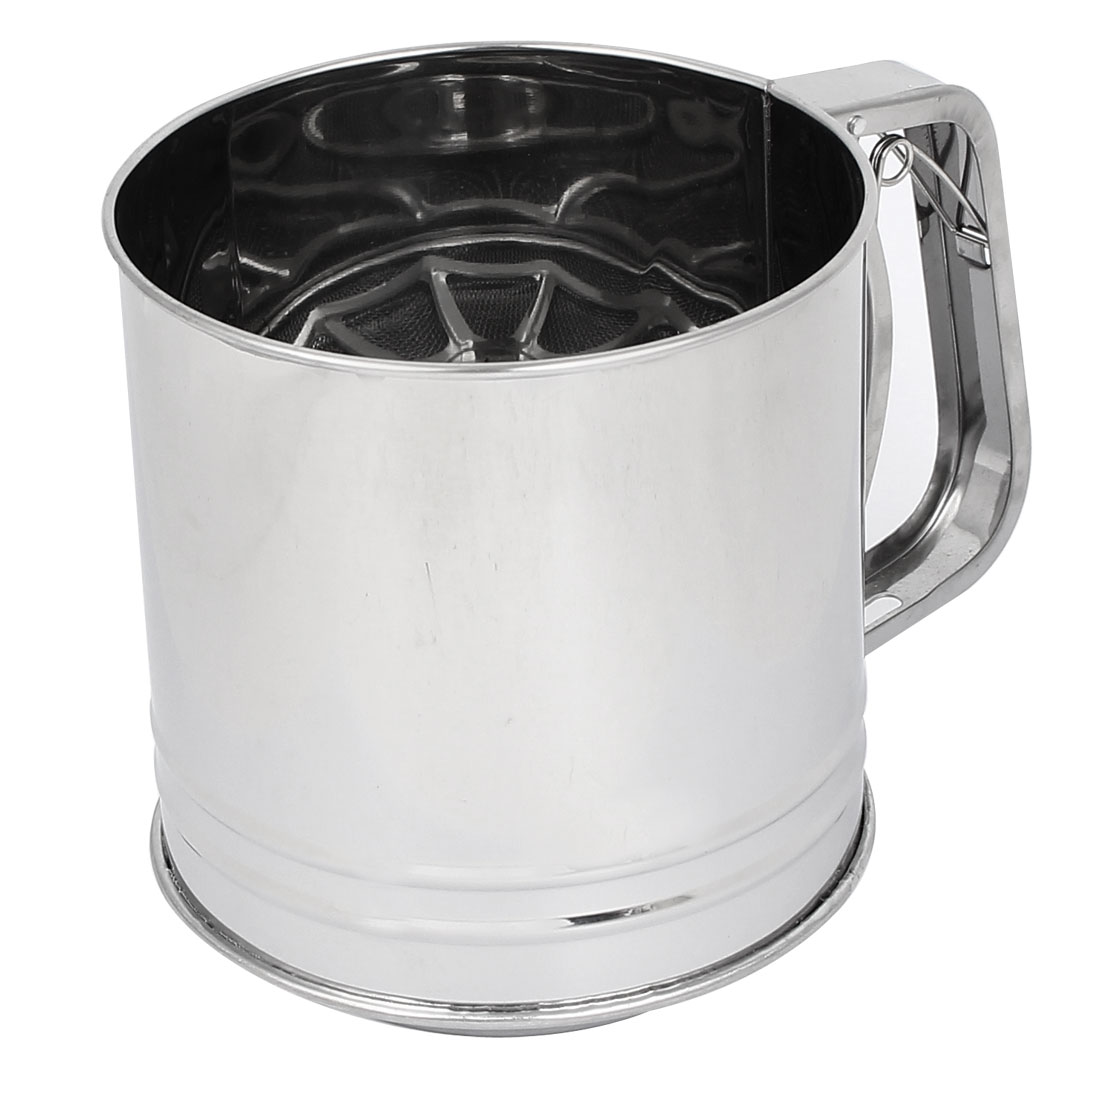 Kitchen Baking Metal Trigger Handle Flour Sugar Mesh Sifter Shaker 1000ml